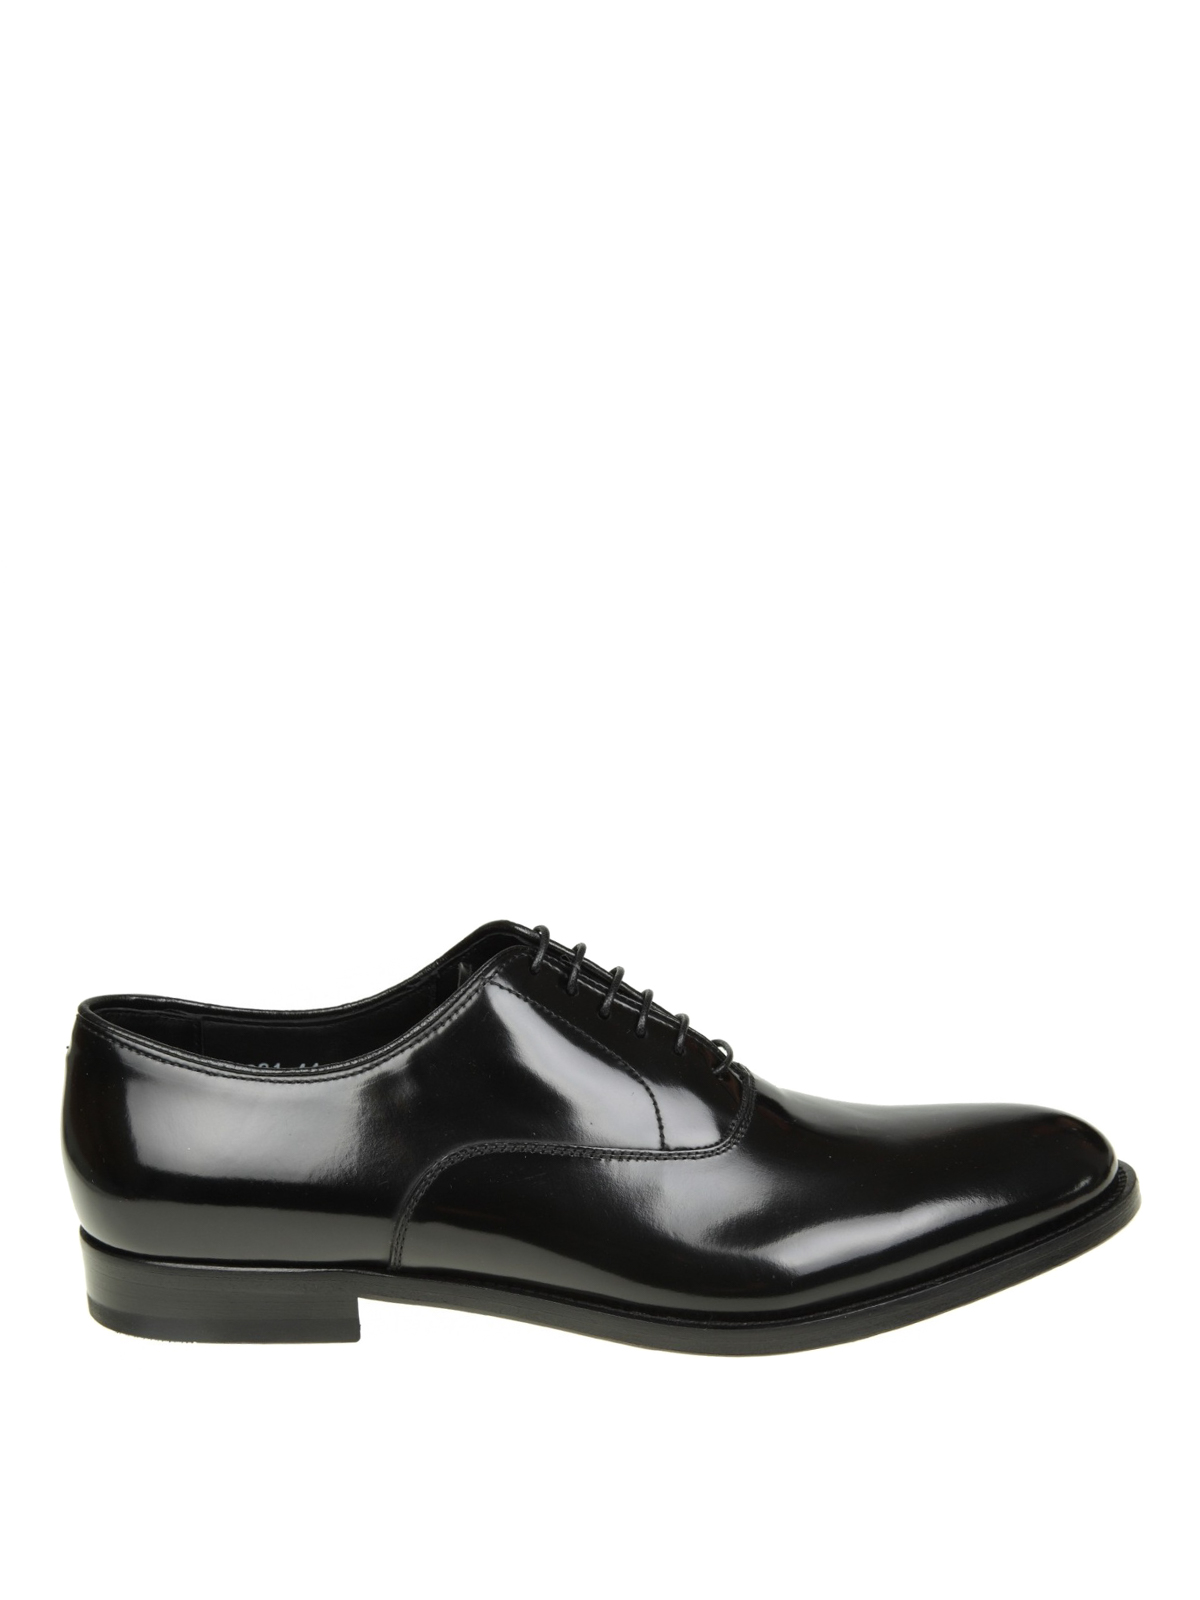 Noir Leatehr Chaussures Oxford Doucal De gzXpqCOSL